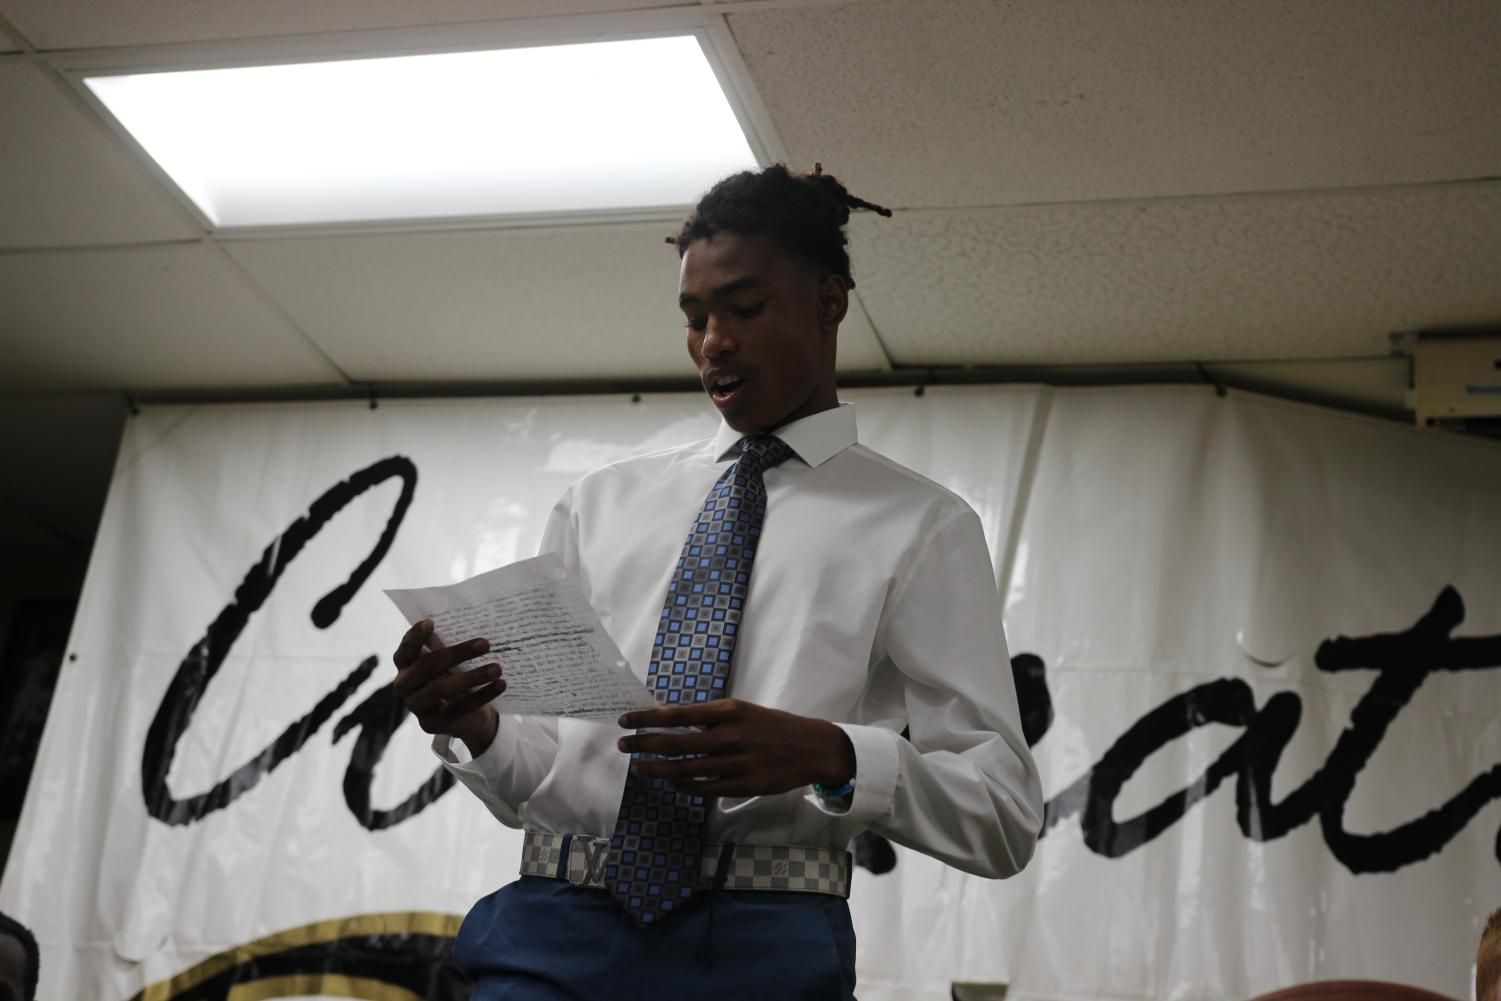 Reading+a+speech+he+wrote%2C+senior+defensive+back+Juilen+Kee+addresses+the+crowd+gathered+April+17+in+the+field+house+for+signing+day.+Kee+has+yet+to+make+the+decision+on+where+he+will+be+attending+school+next+fall.+